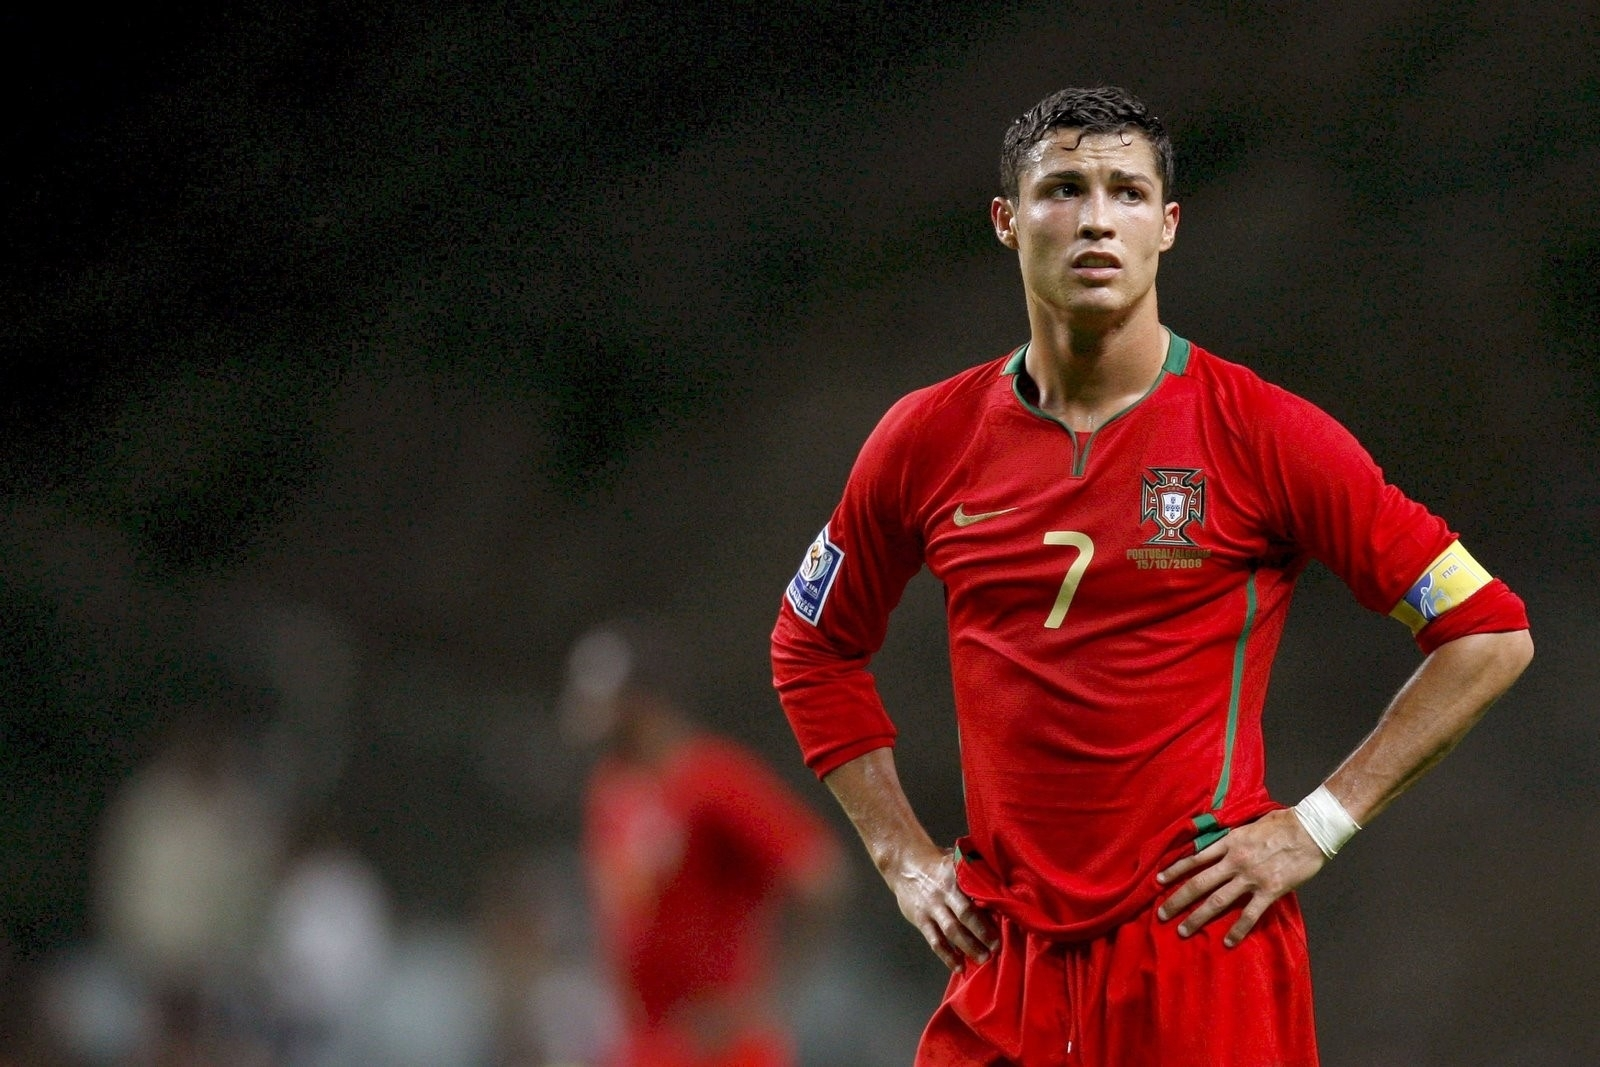 best football player cristiano ronaldo in red wallpaper | hd wallpapers